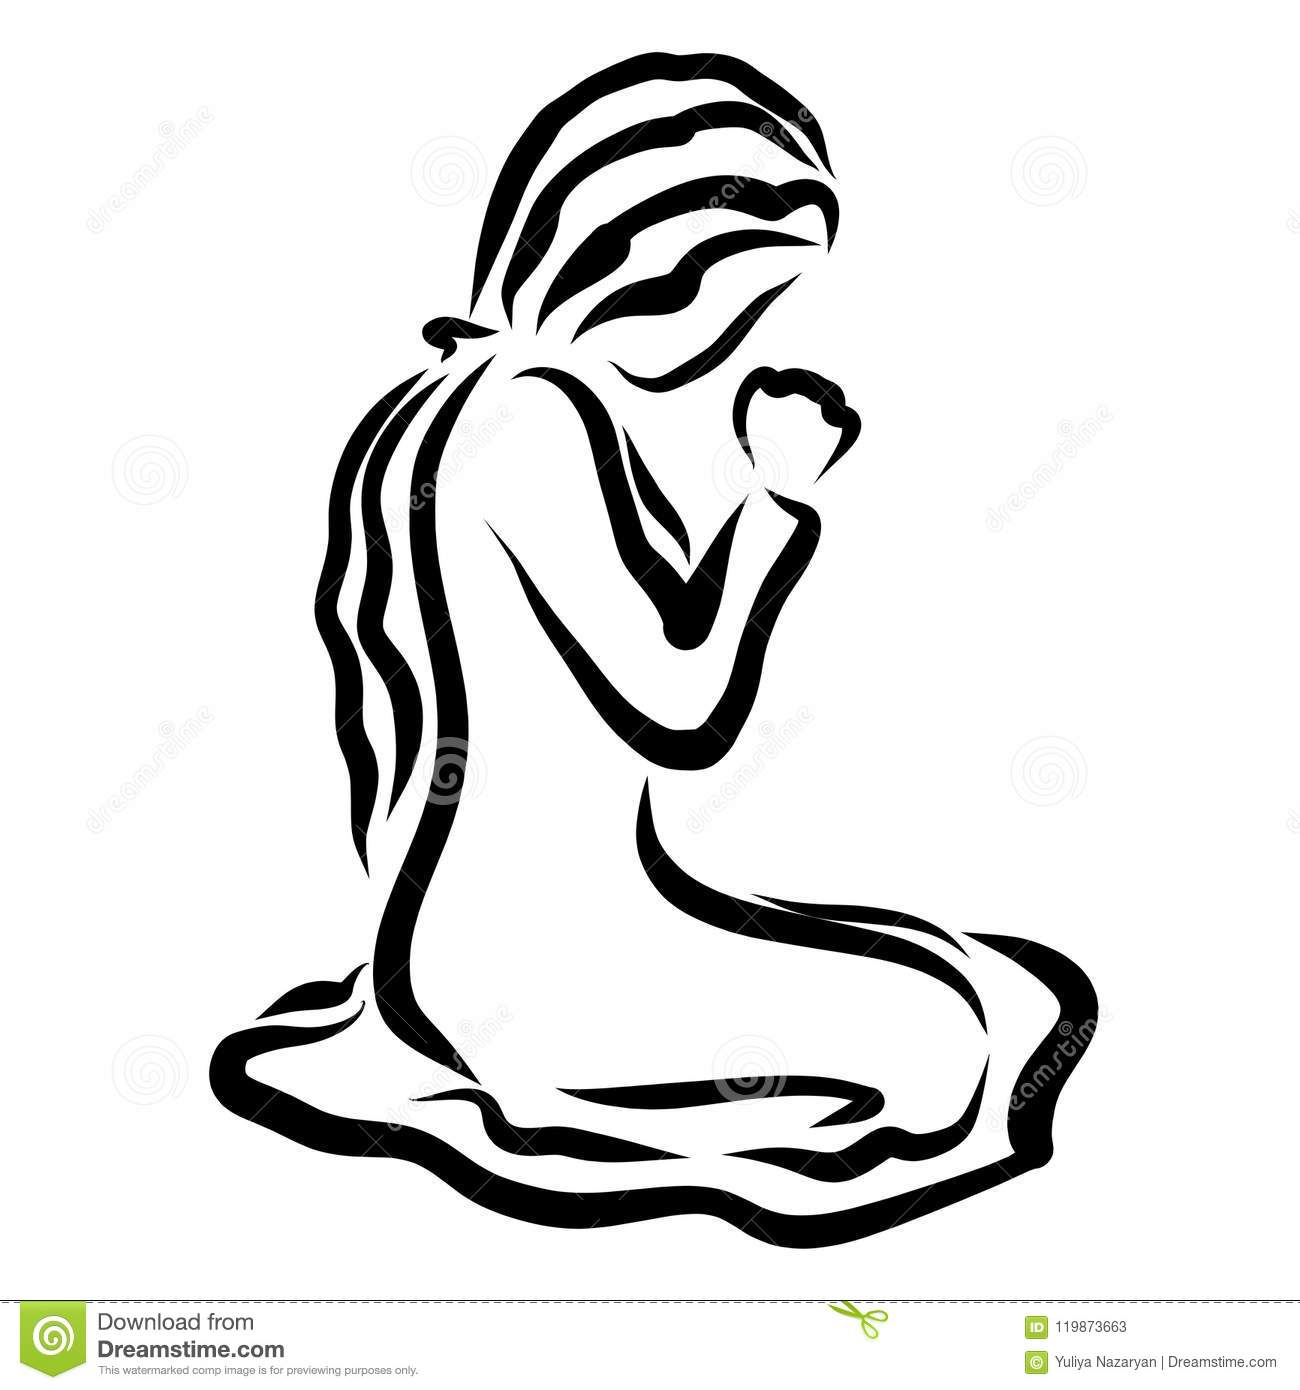 Easter Praying Hands Religious Royalty Free Illustration